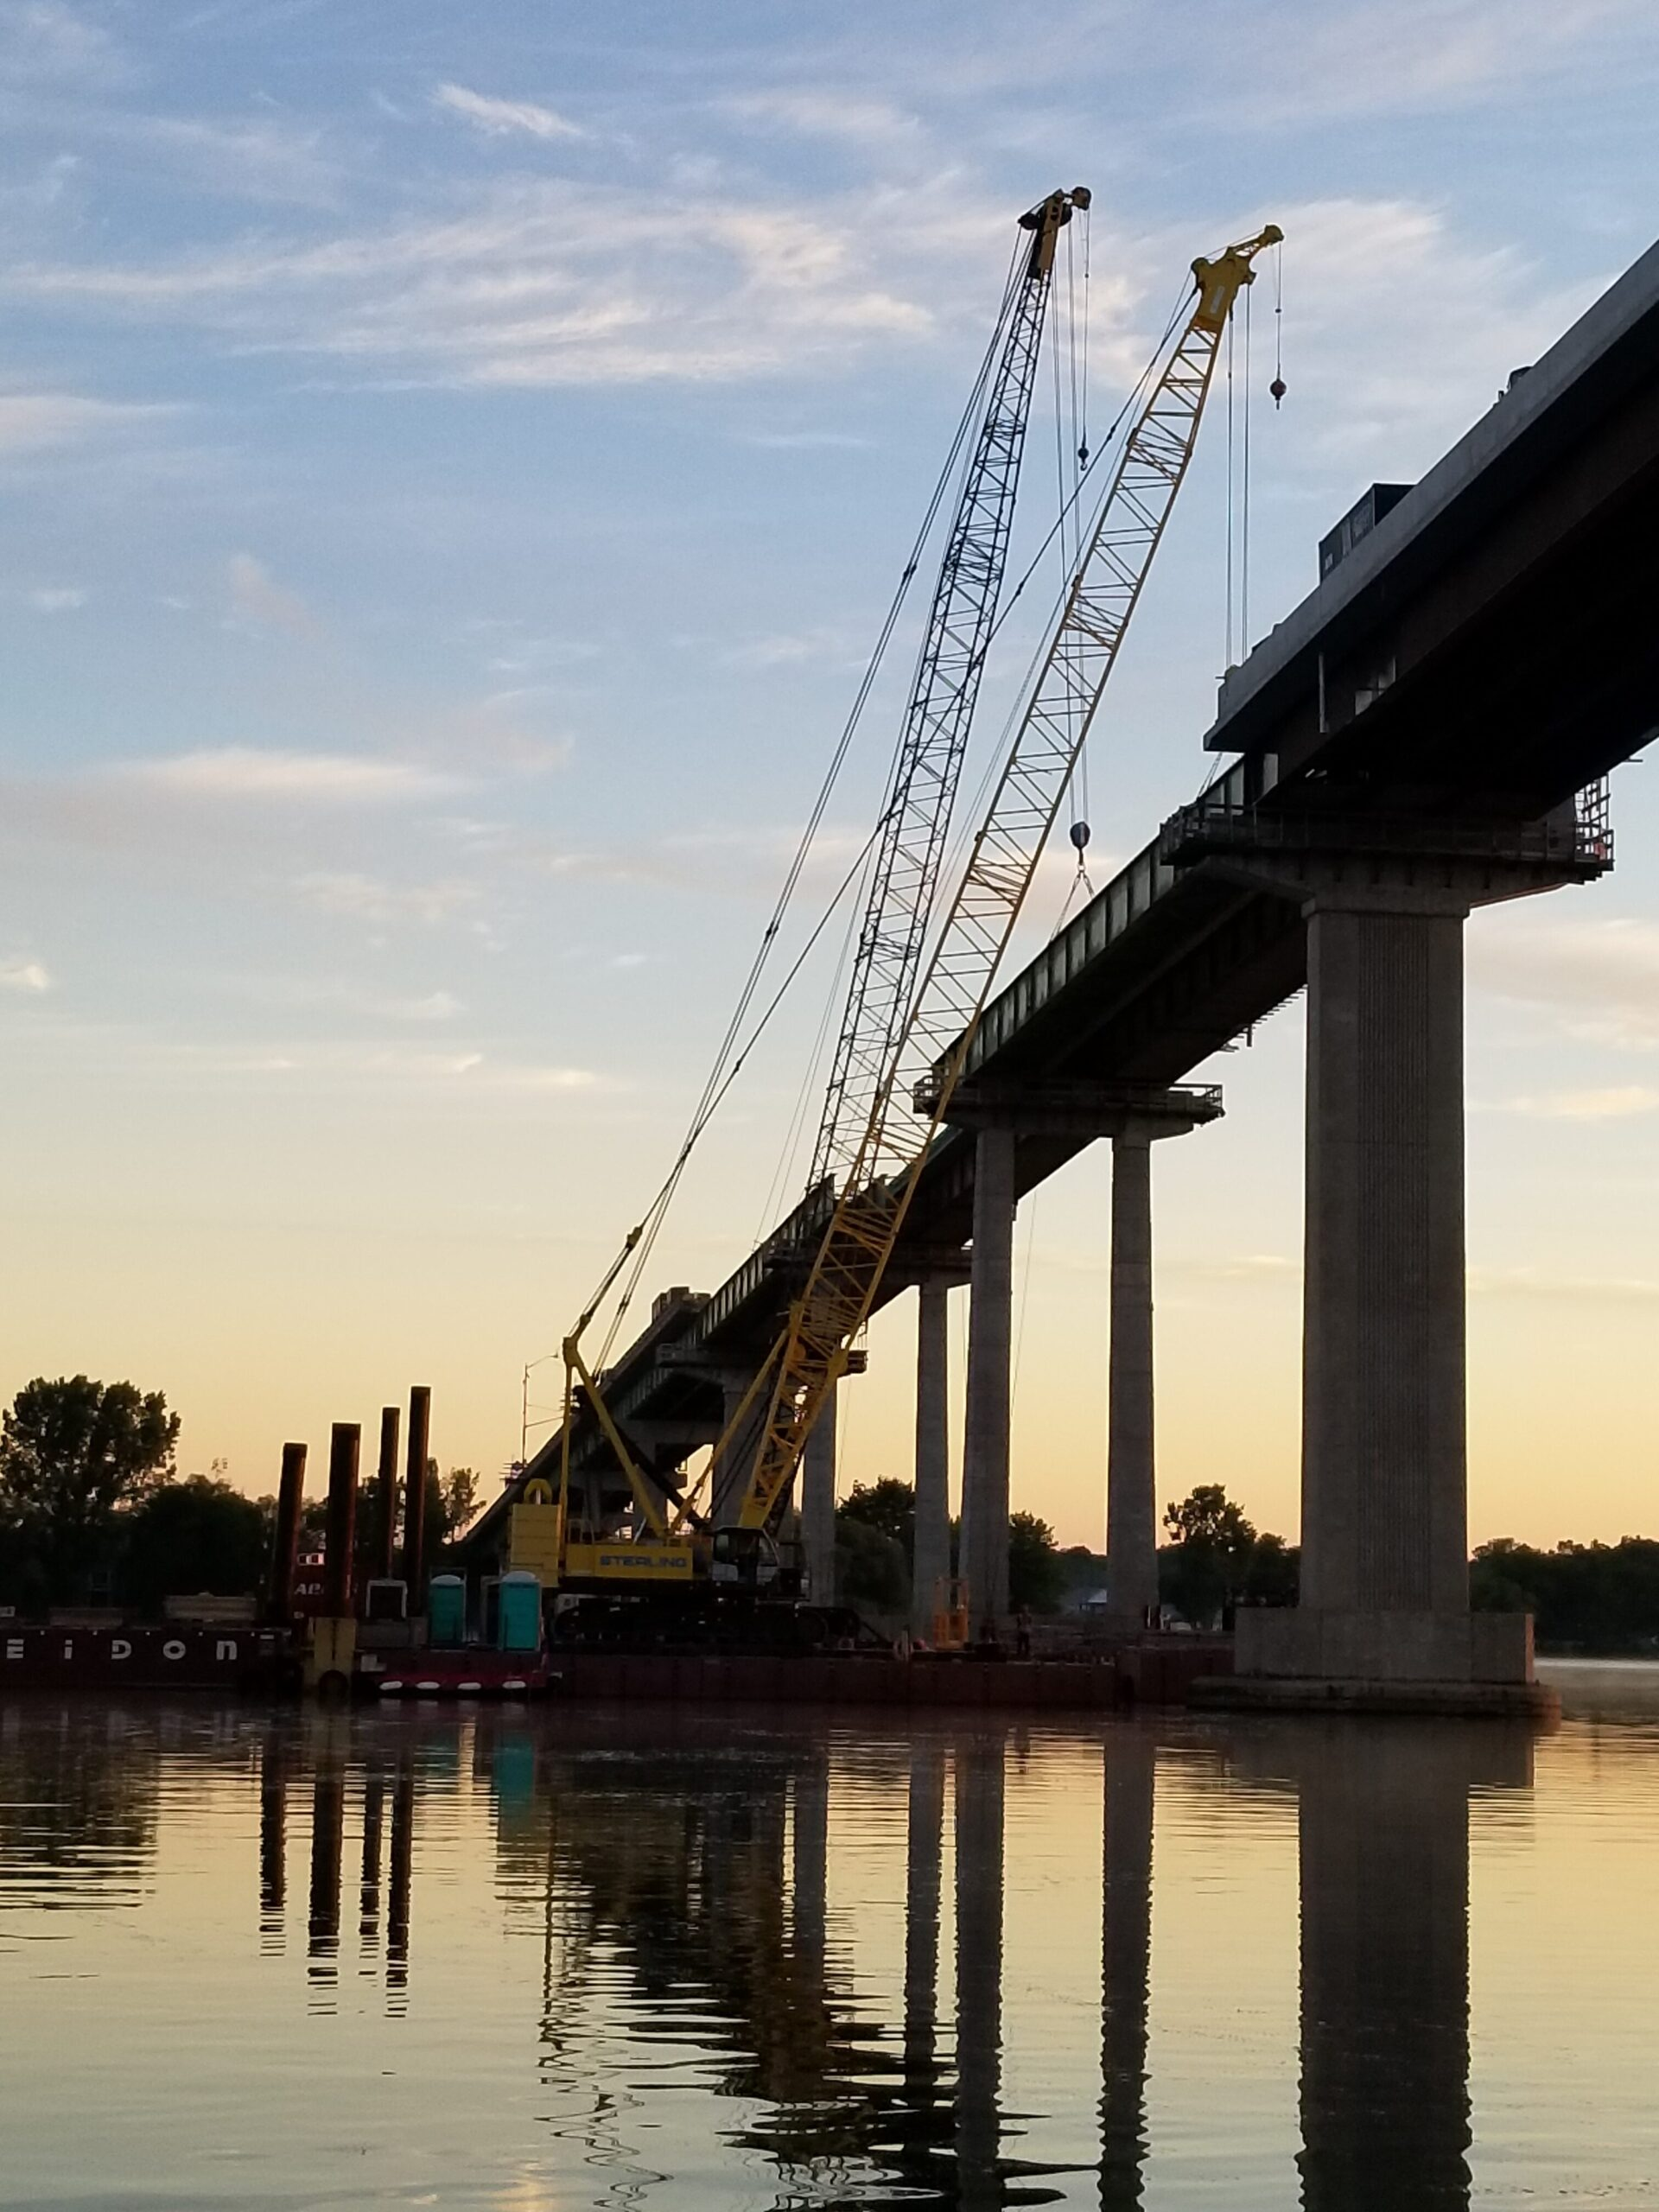 Approach girder hooked up to both cranes preparing for removal